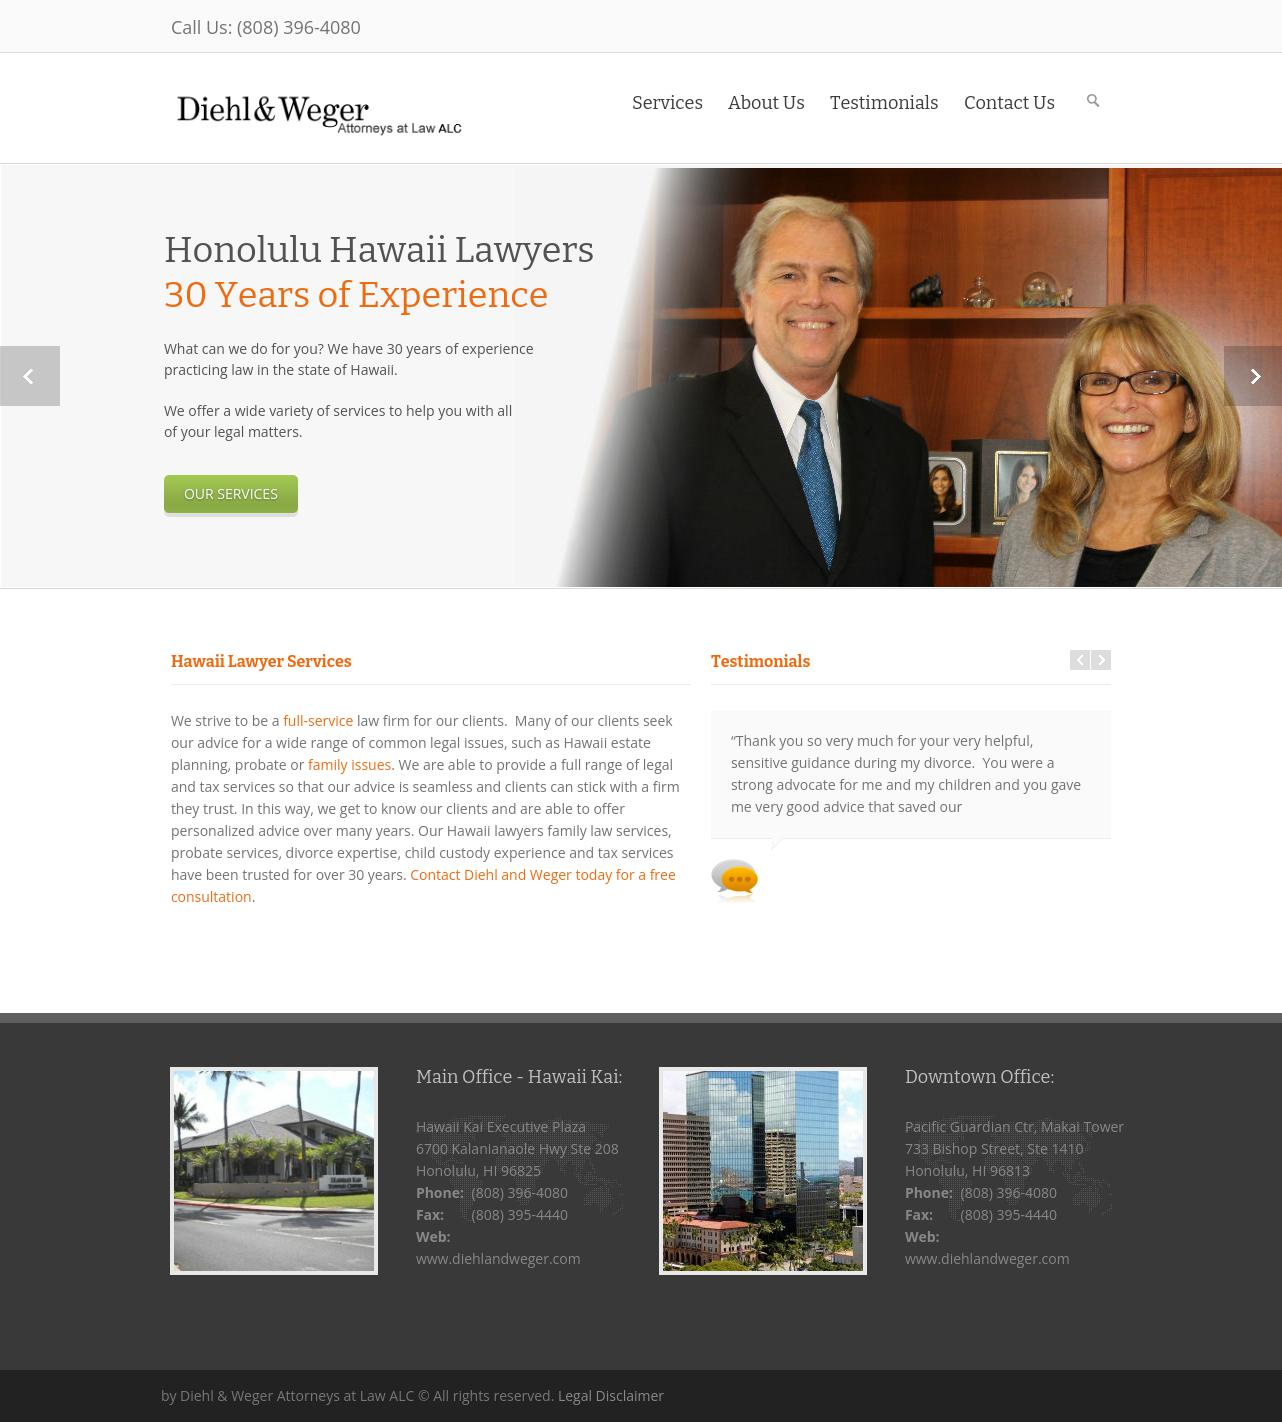 Diehl And Weger Attorneys At Law-A Law Corporation - Honolulu HI Lawyers